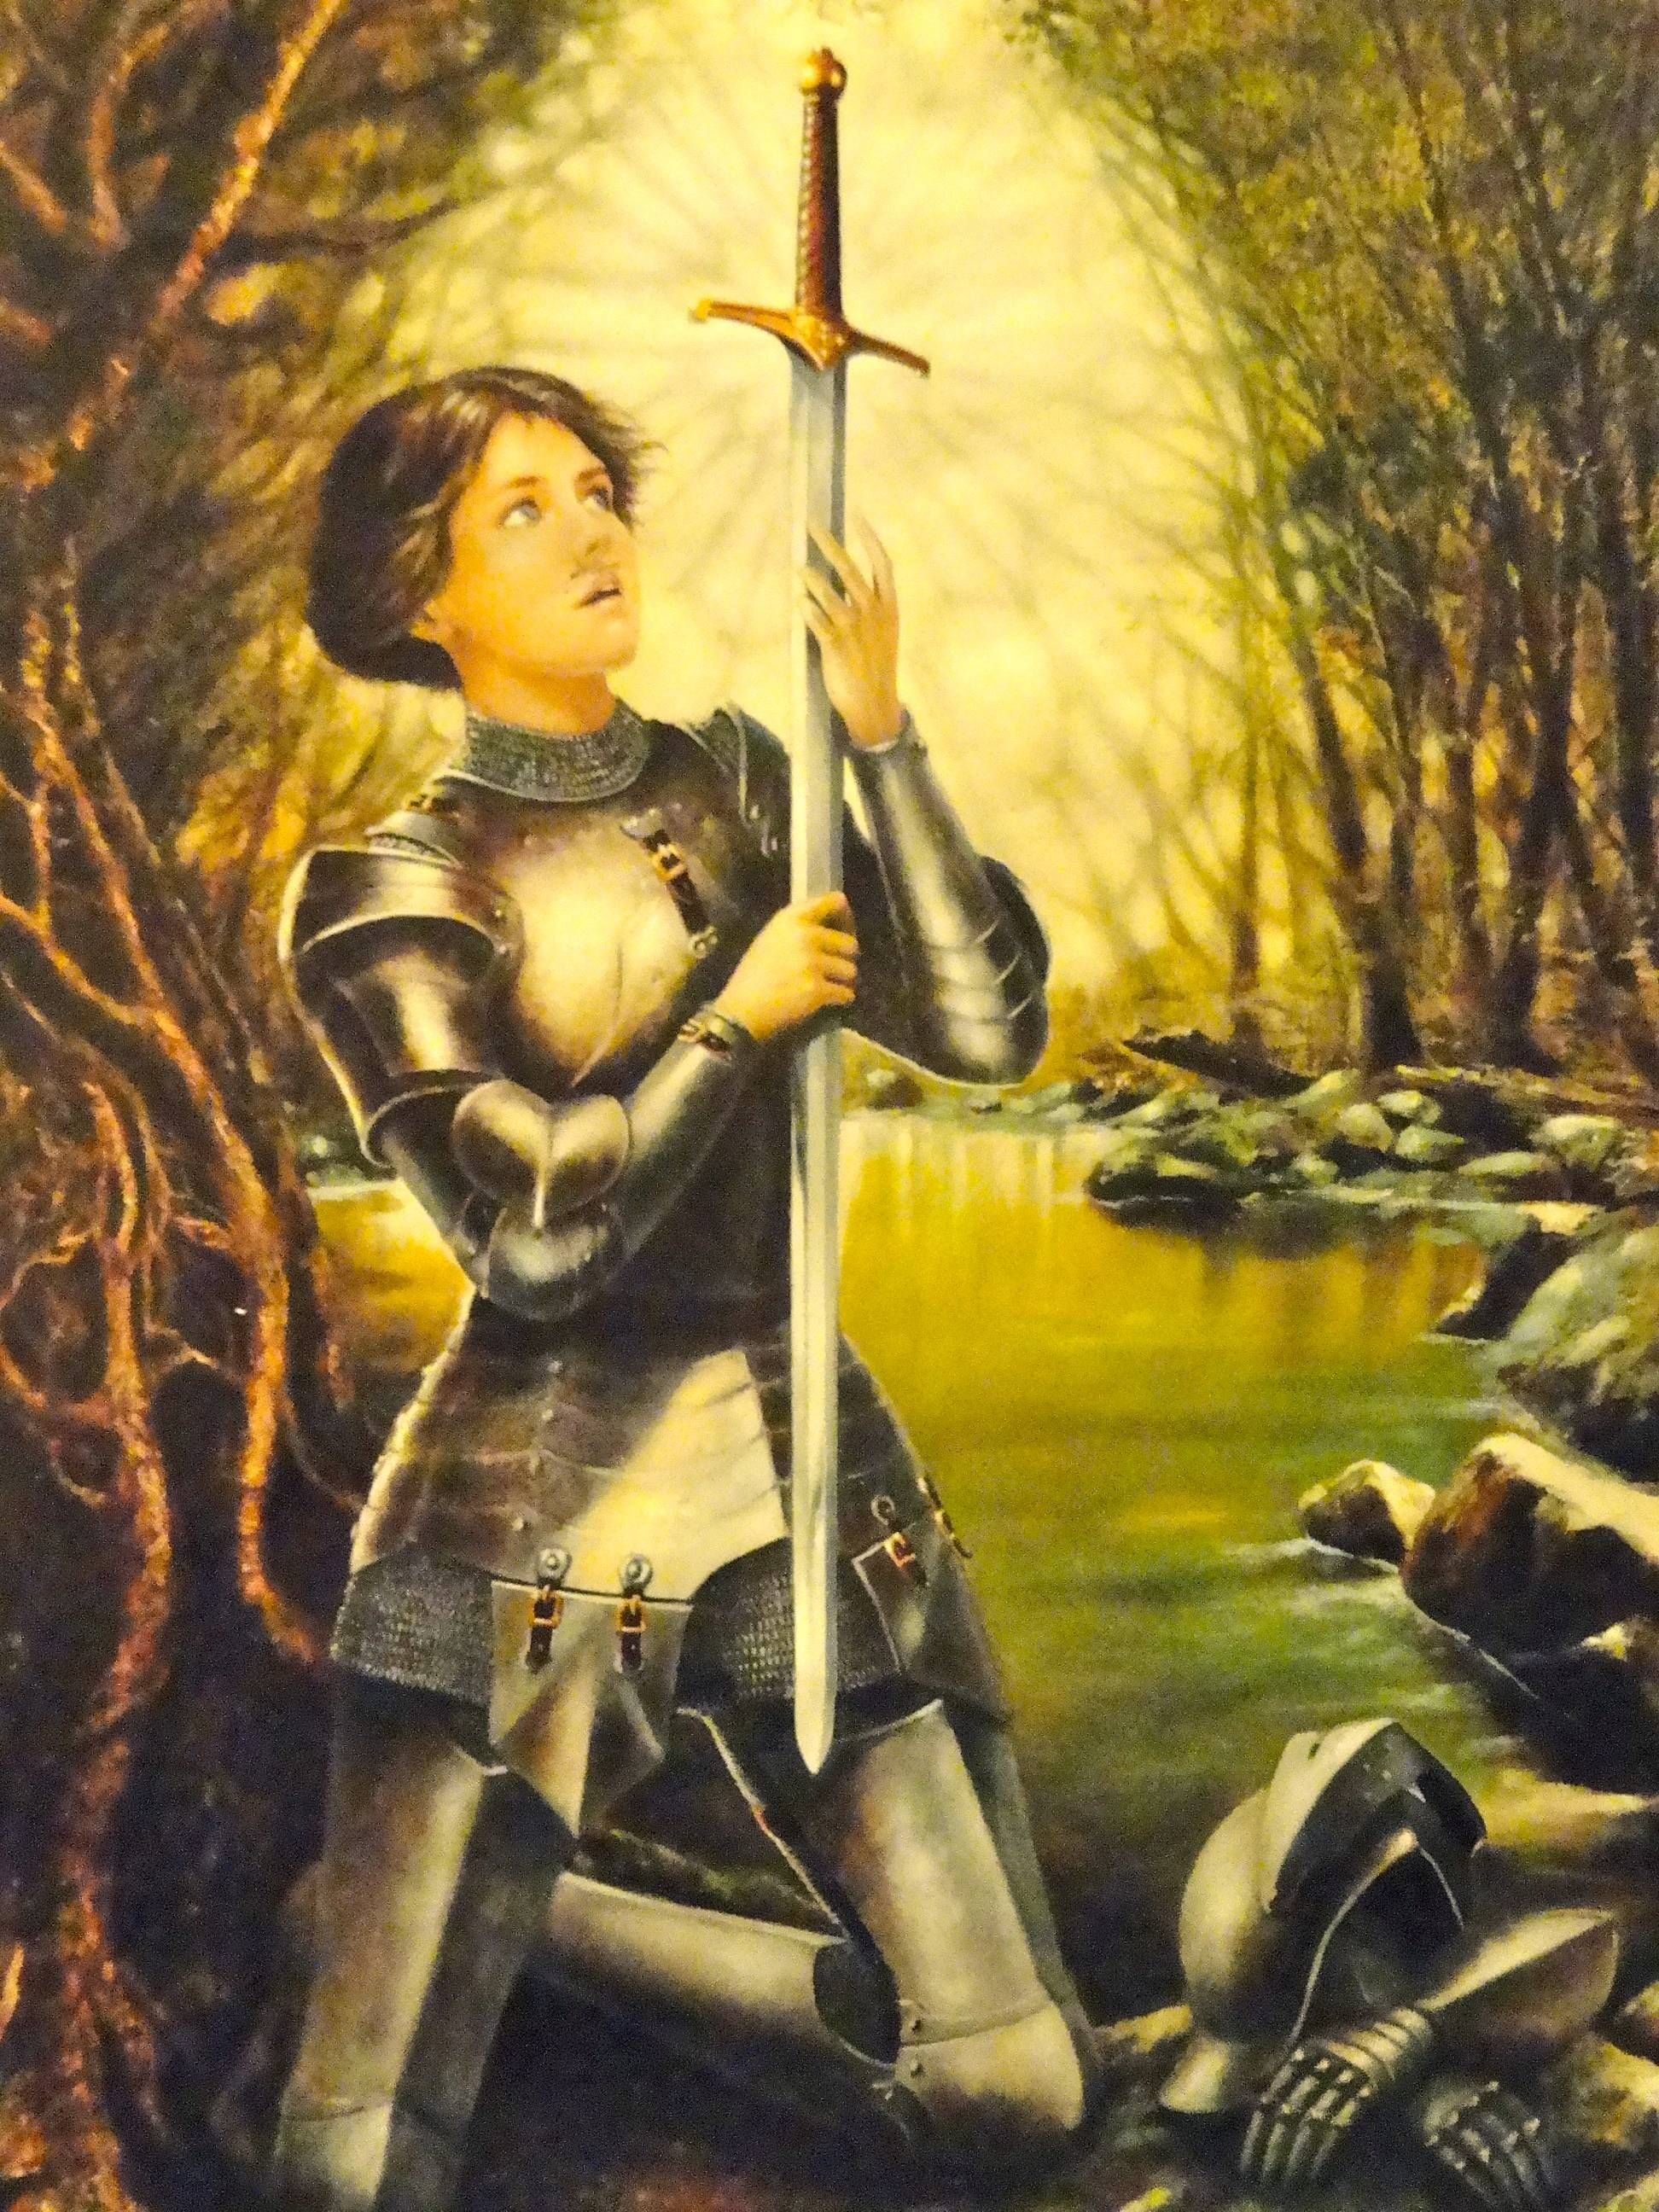 joan of arc one of the most admired female figures in history Test your knowledge of these famous historical figures, including notable people such as alexander hamilton and marie antoinette.